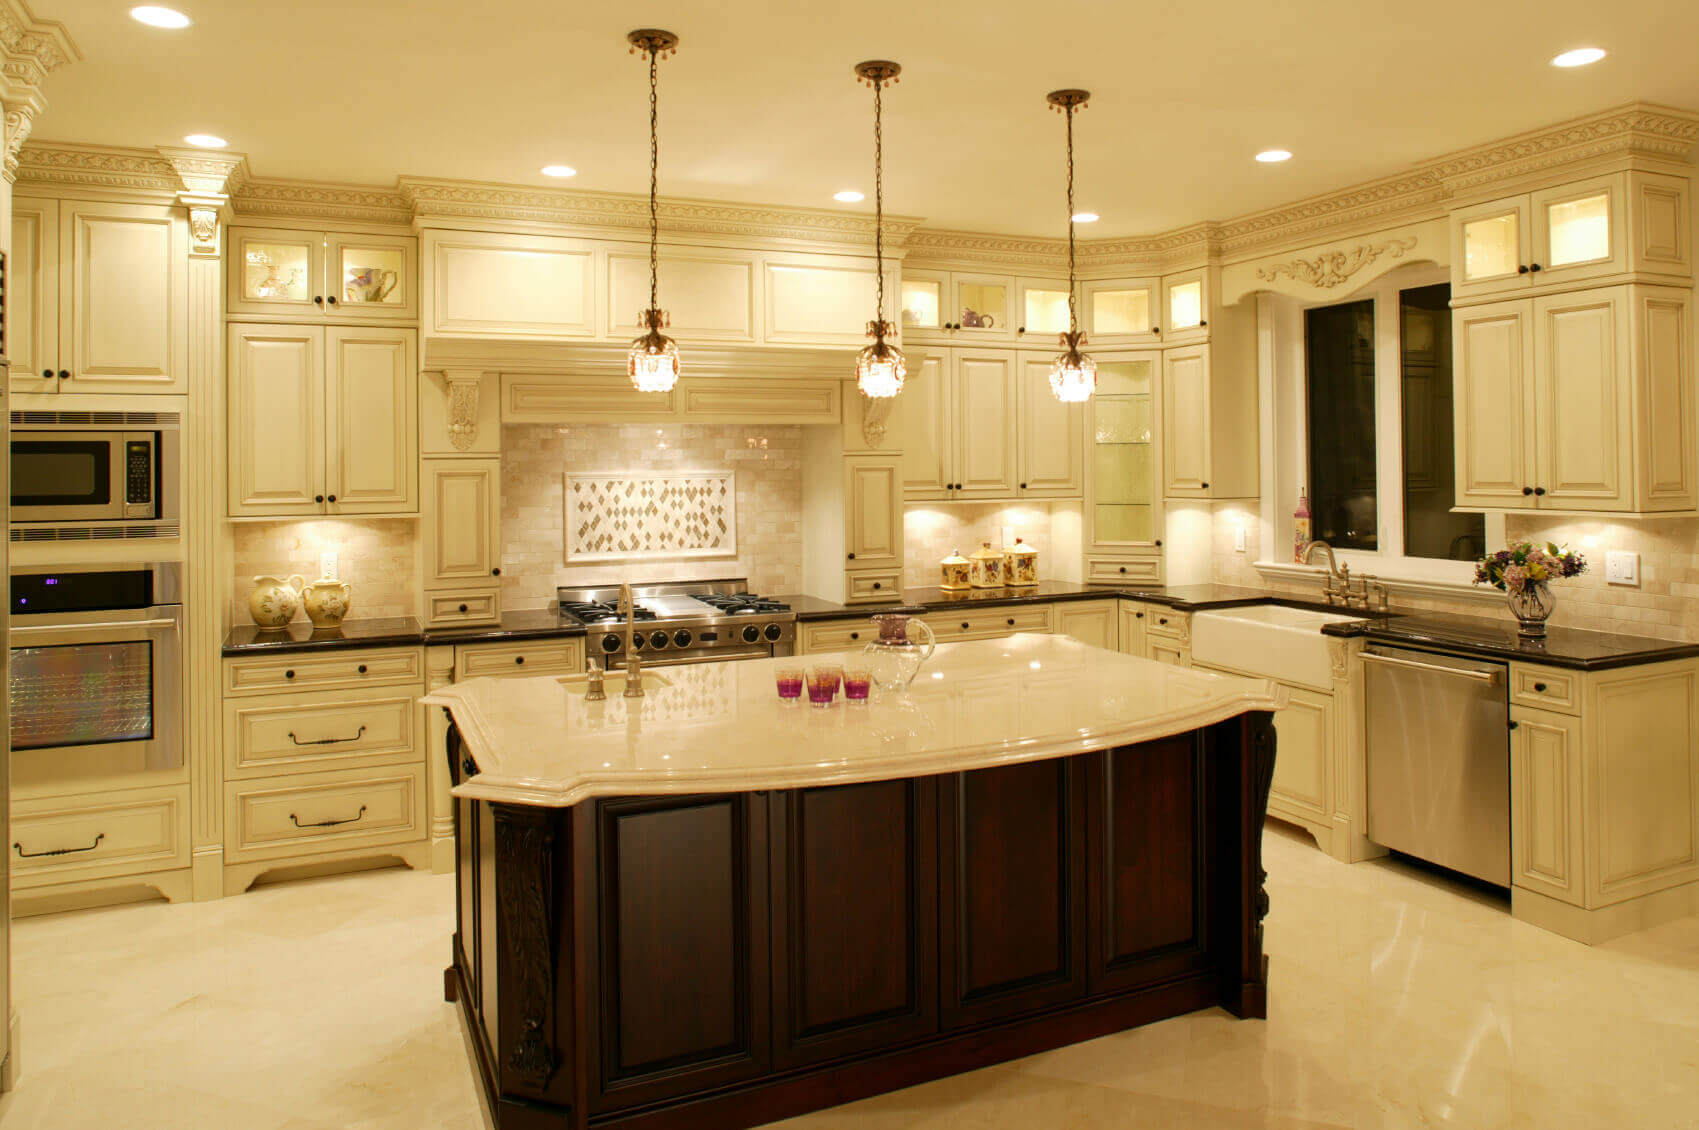 89 contemporary kitchen design ideas gallery backsplashes this all gold kitchen features simple contemporary kitchen backsplash idea which adds visual interest and